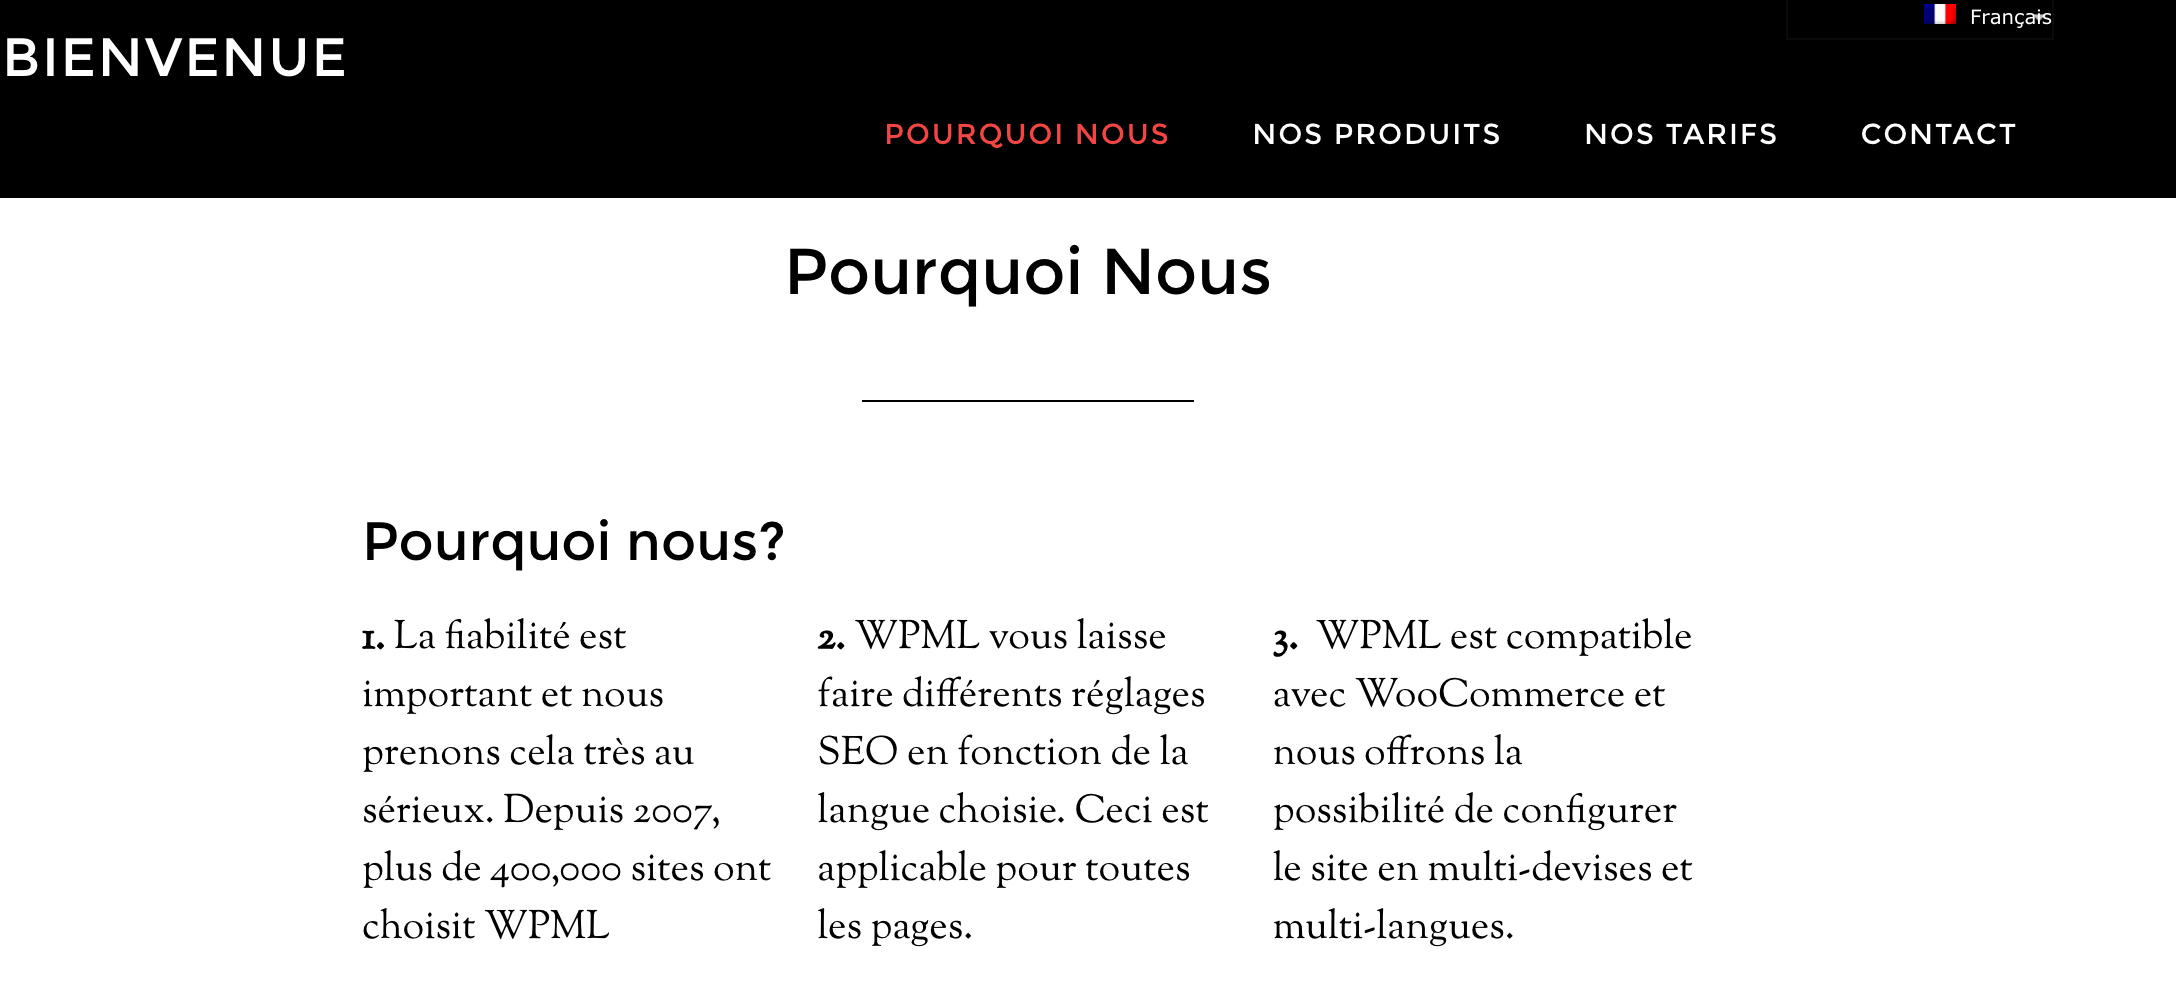 How to translate Genesis Framework into different languages using WPML